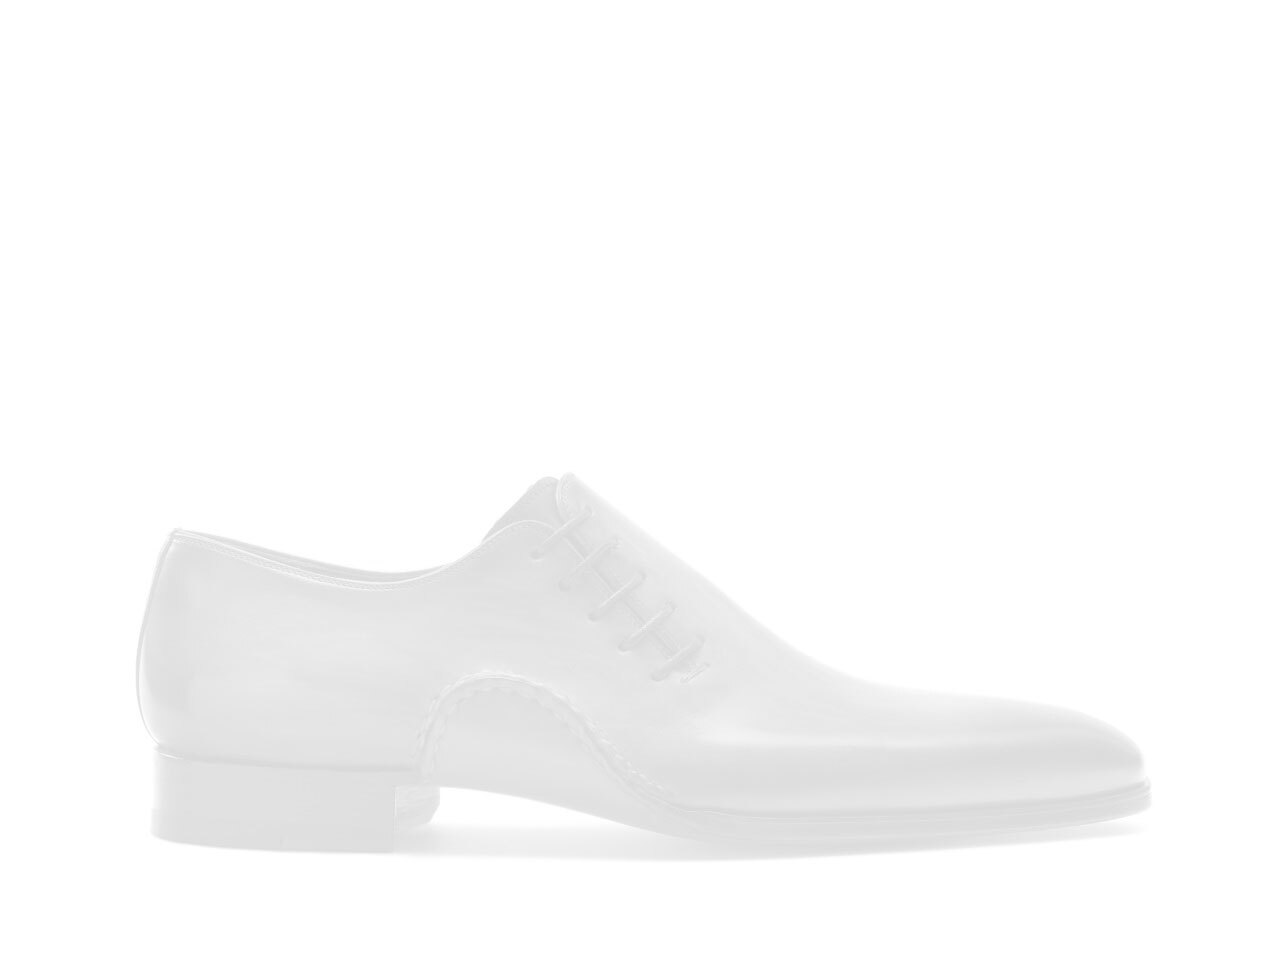 Side view of the Magnanni Siero White Men's Sneakers